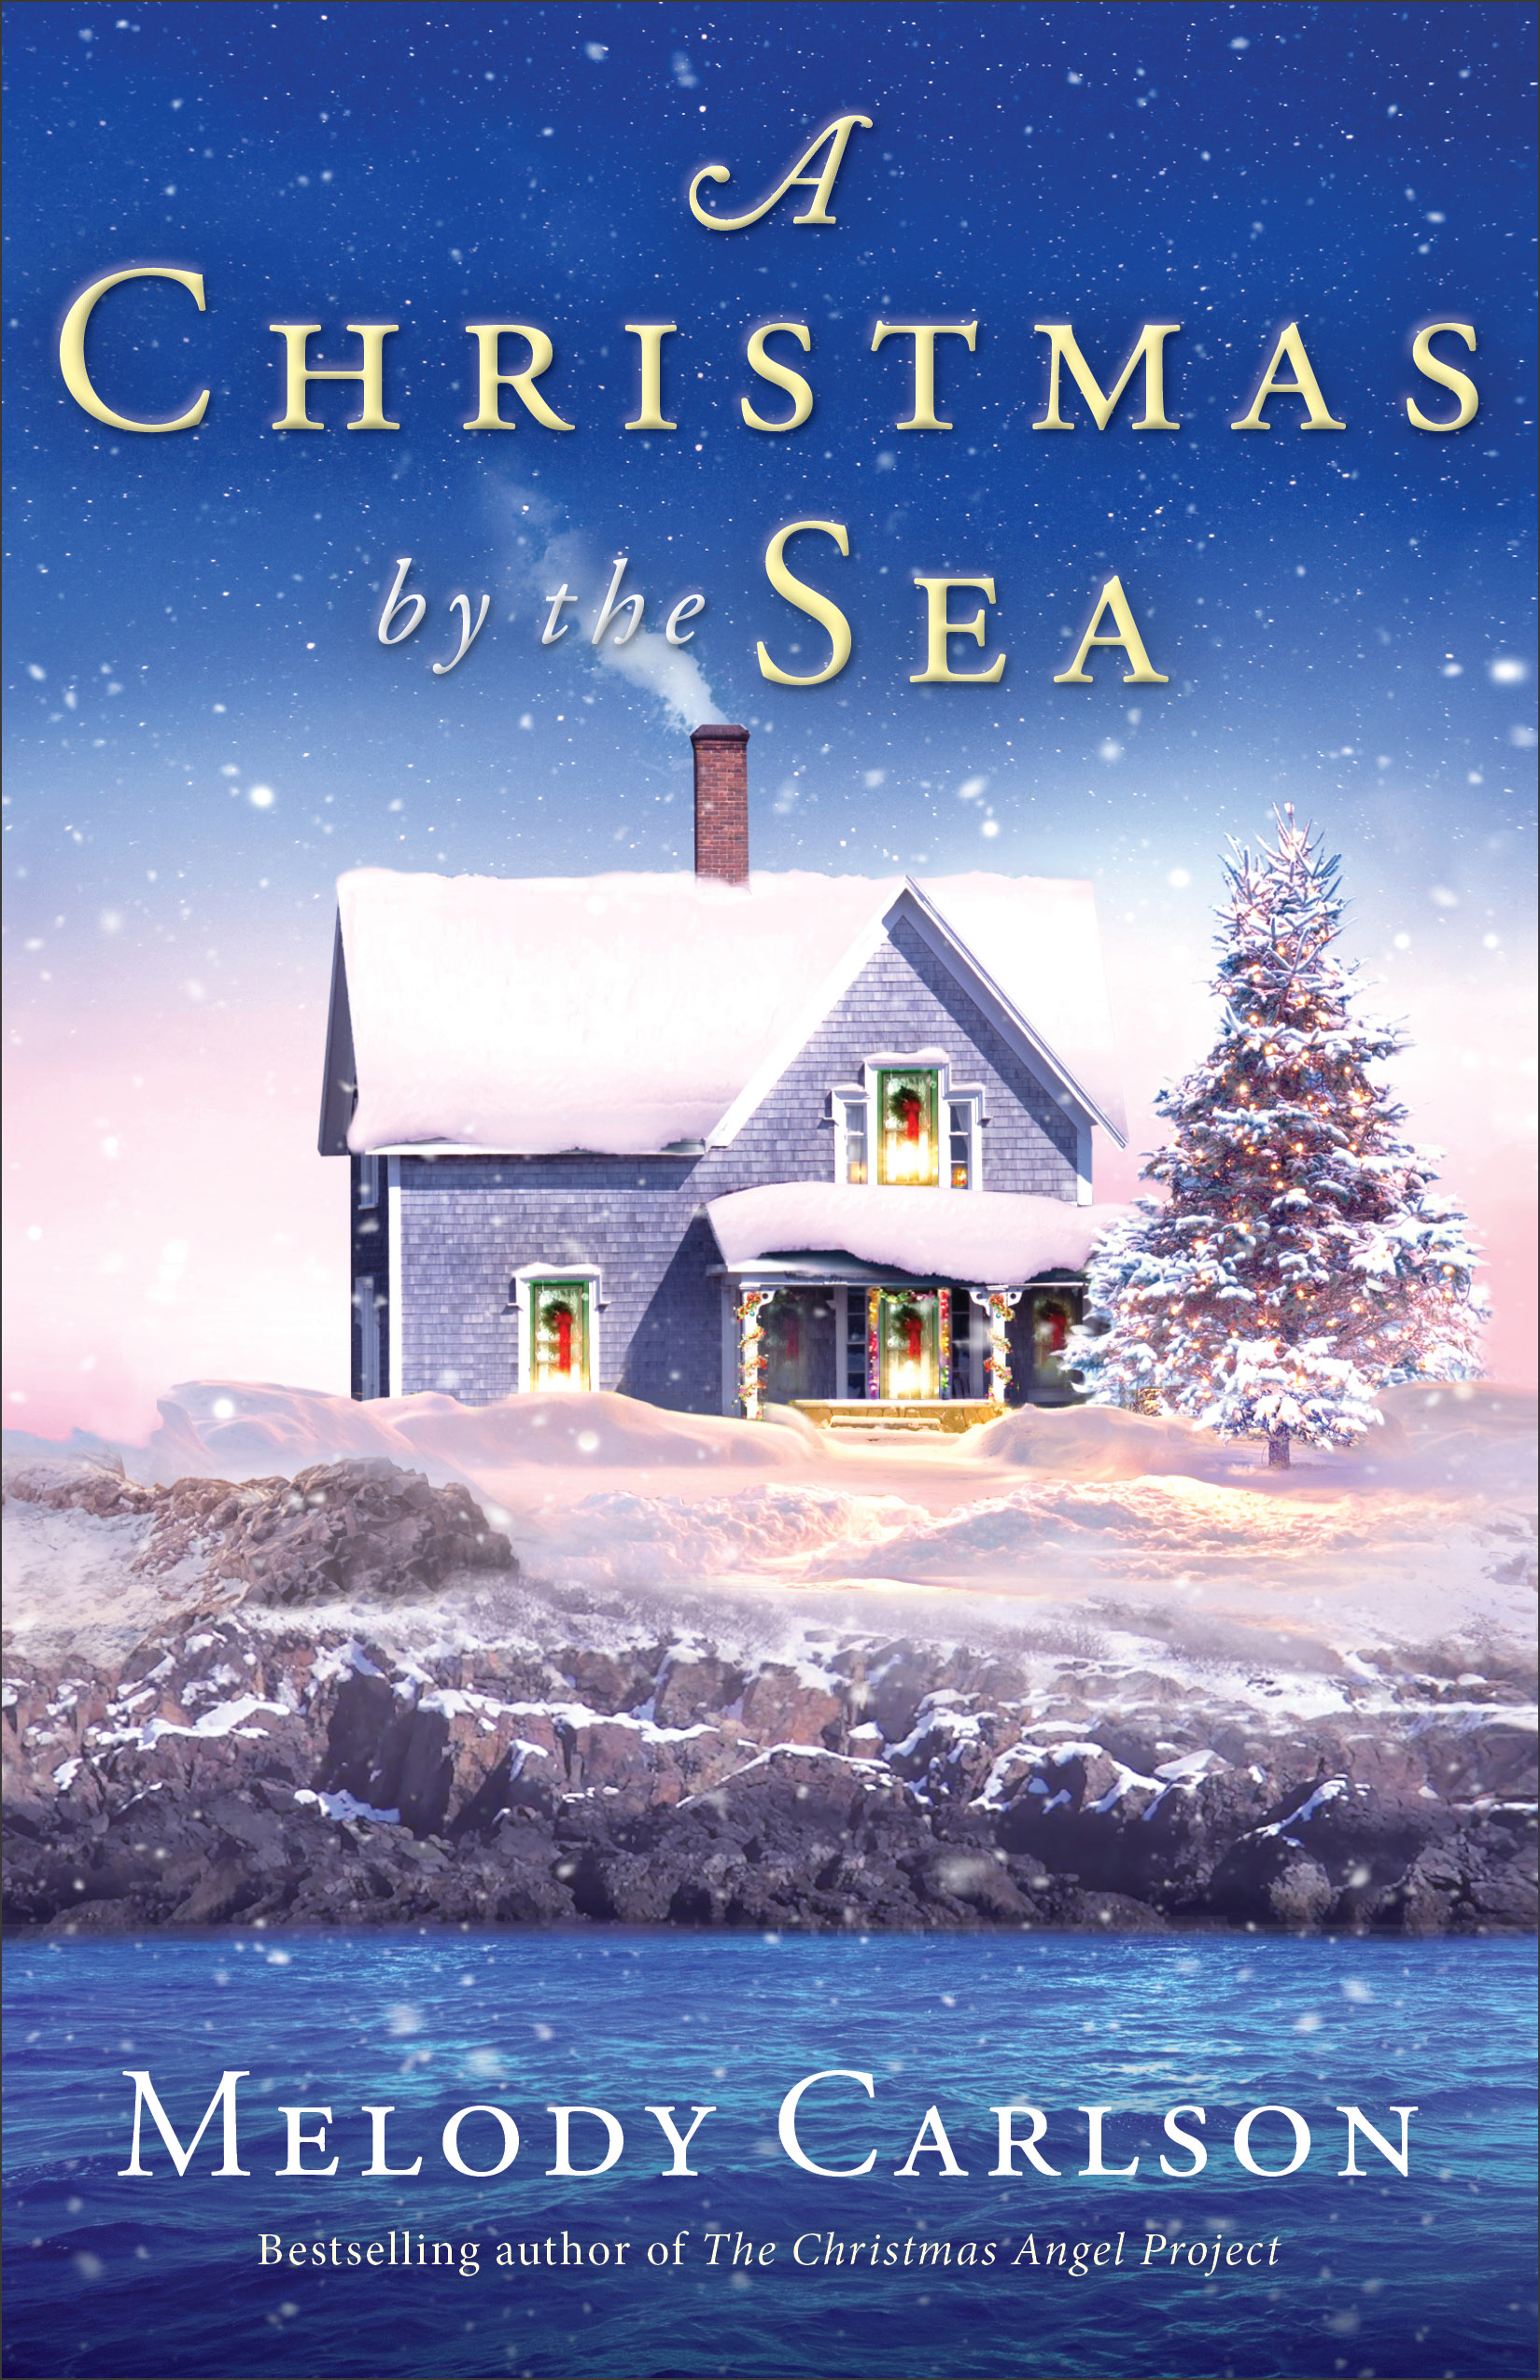 Book review of A Christmas By The Sea by Melody Carlson (Revell) by papertapepins